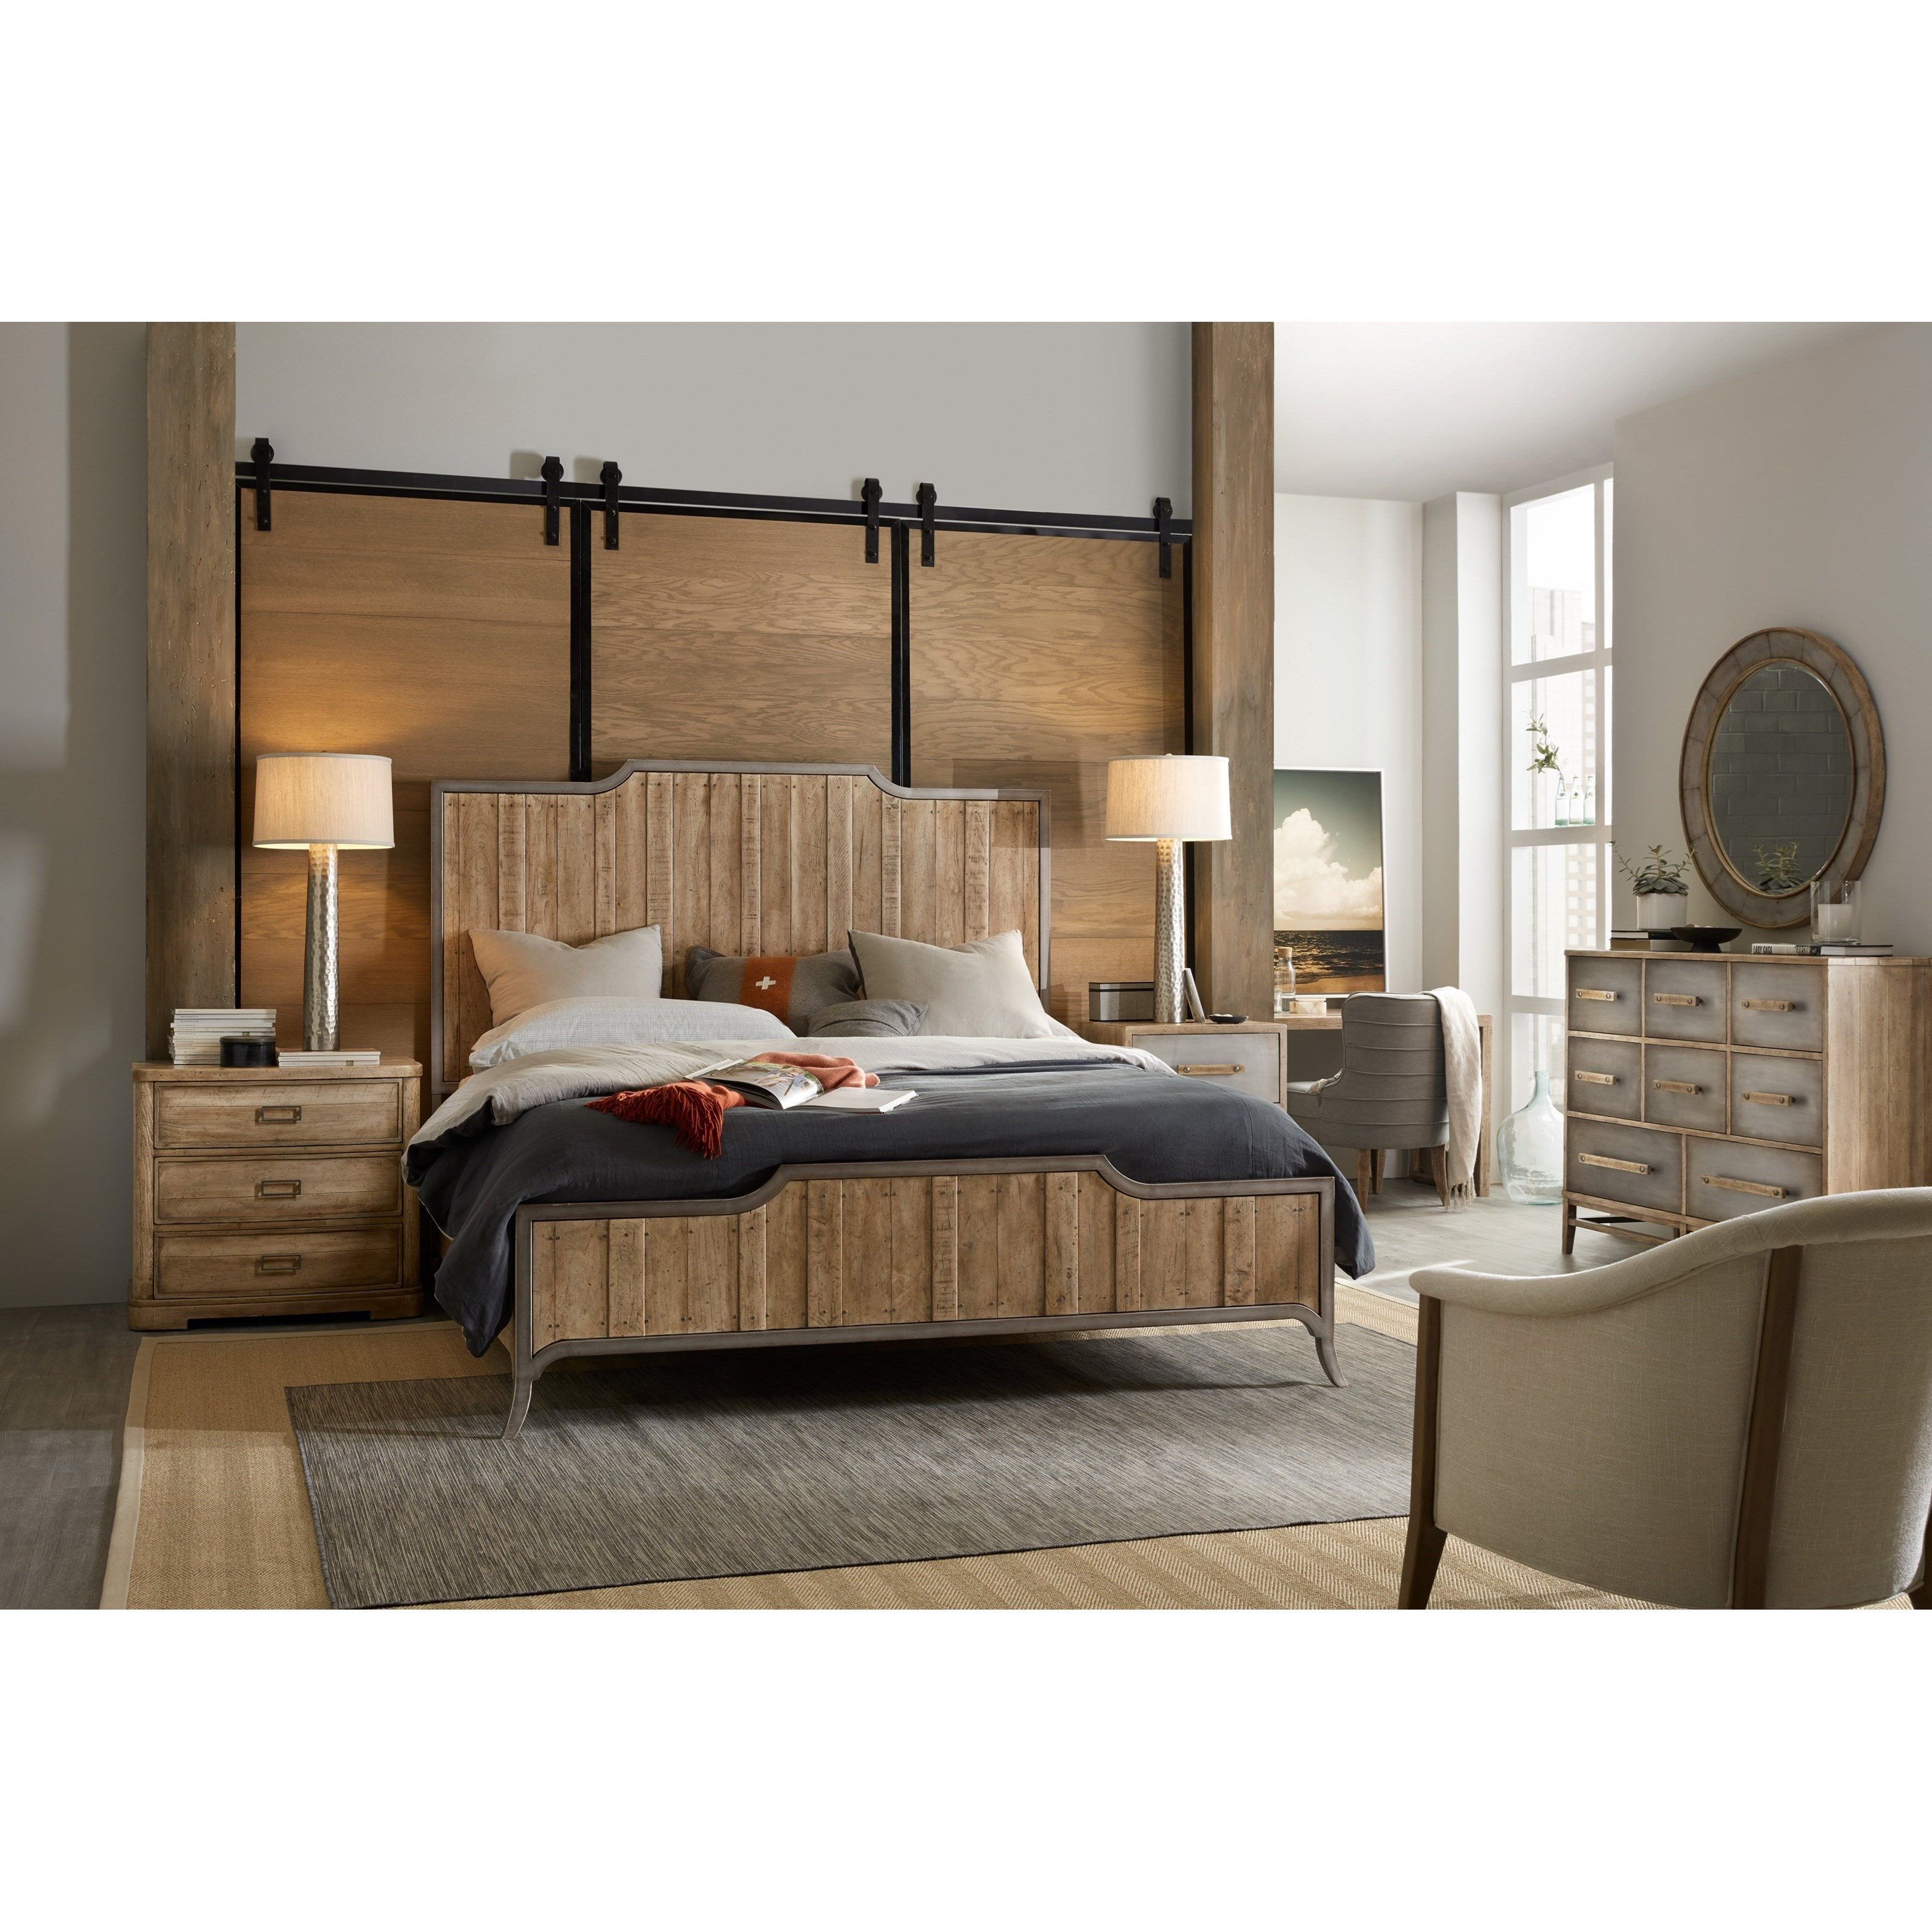 Hooker Furniture American Life Urban Elevation Queen Bedroom Group Belfort Furniture Bedroom